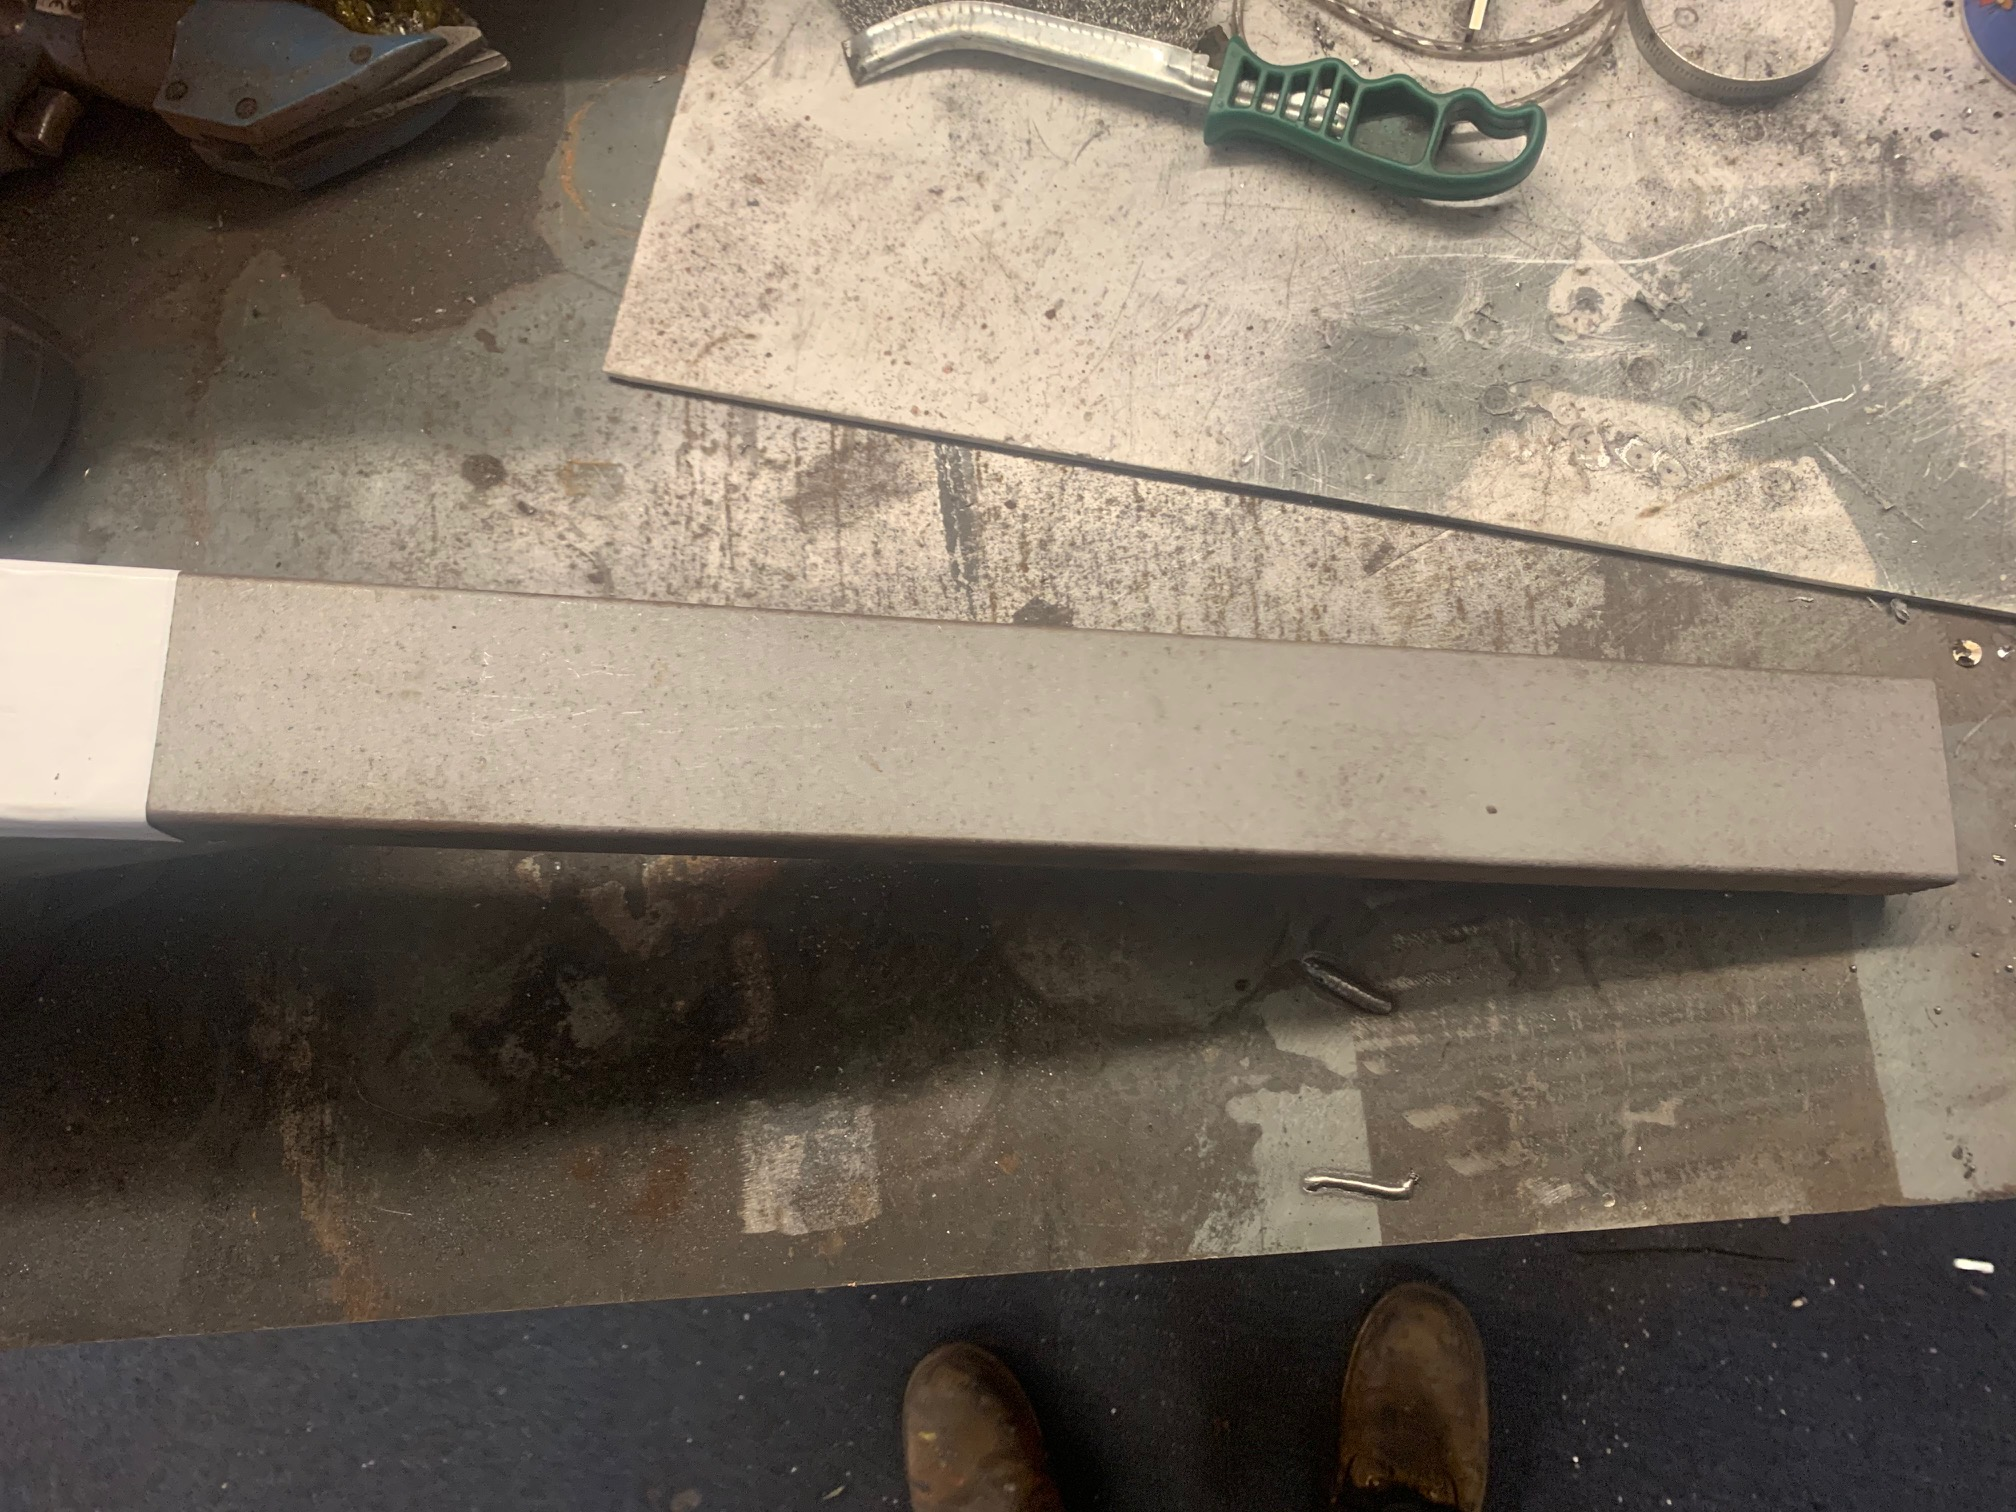 Zinc Rich Primer testing on blasted steel